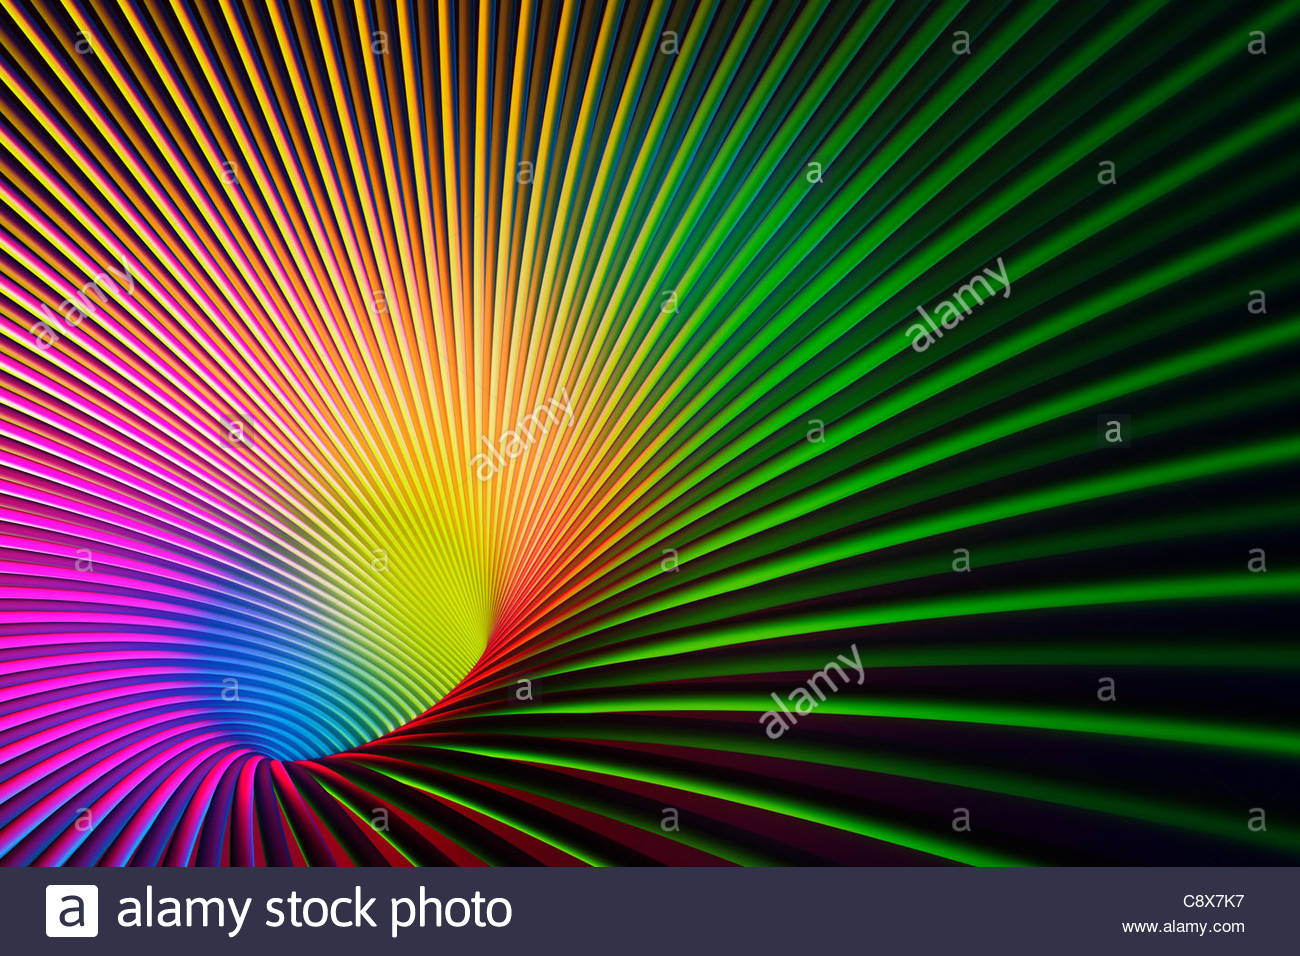 Abstract lines vanishing into glowing hole - Stock Image